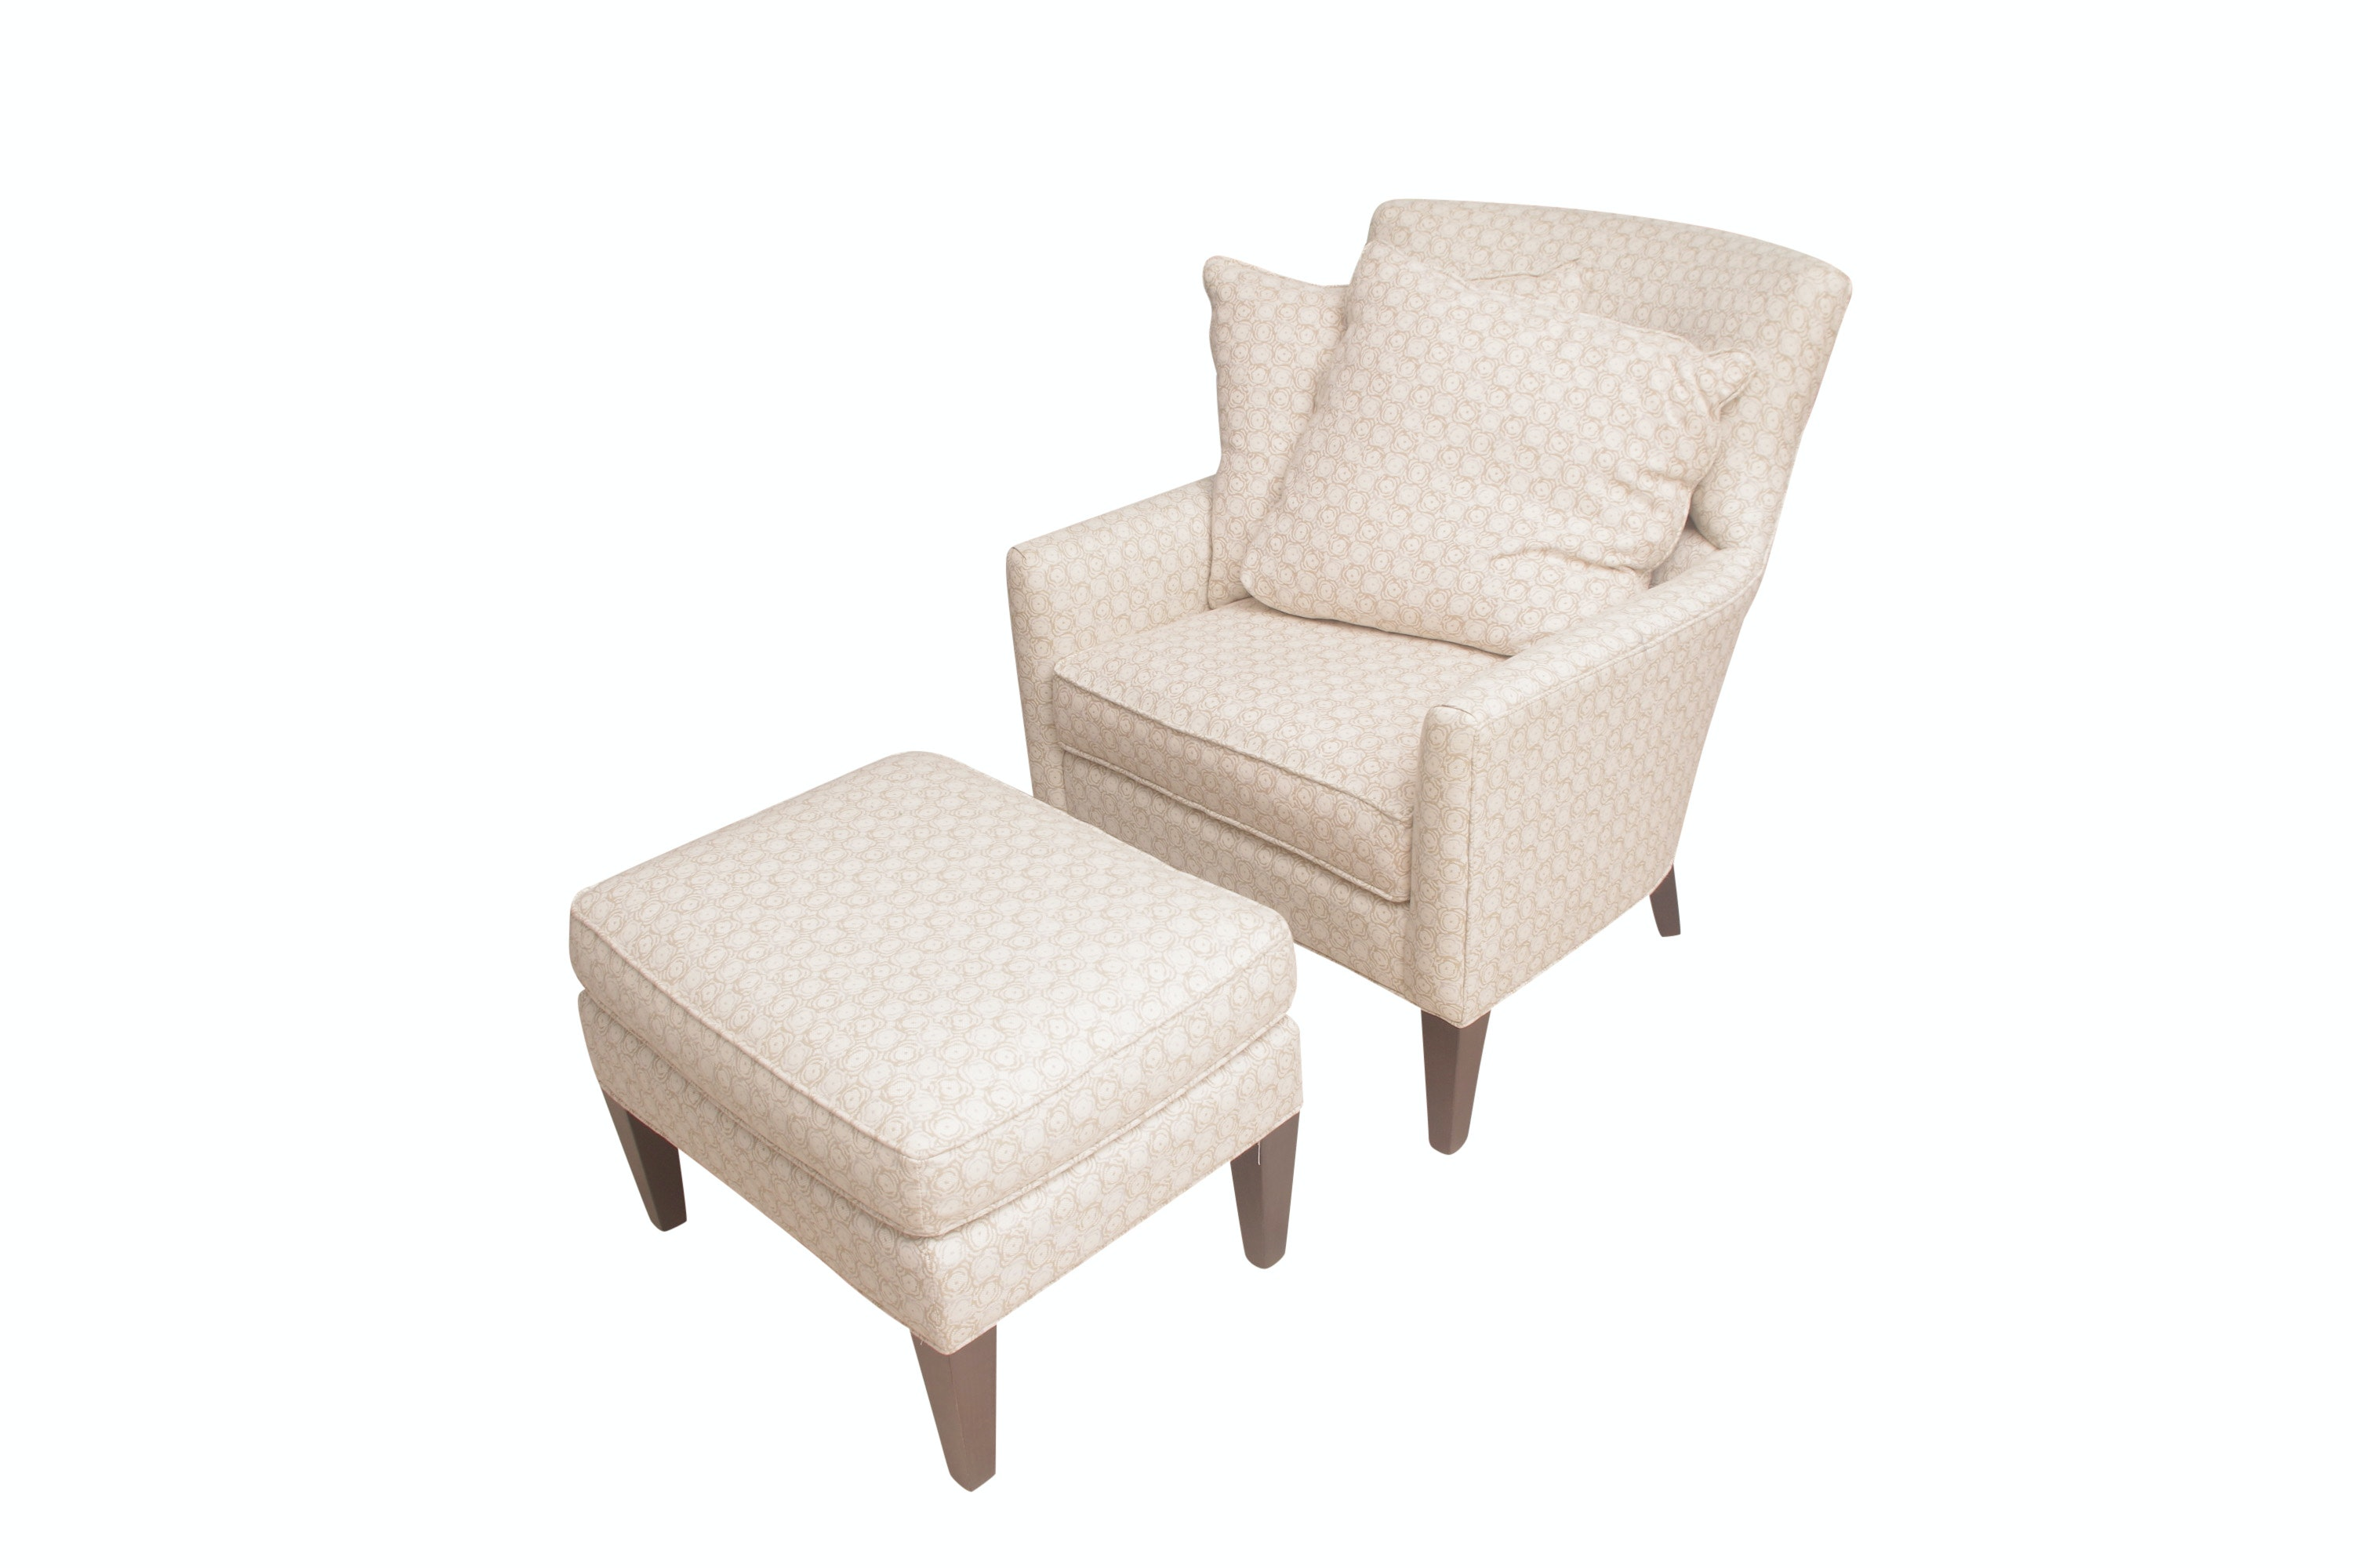 Arhaus Contemporary Armchair with Ottoman